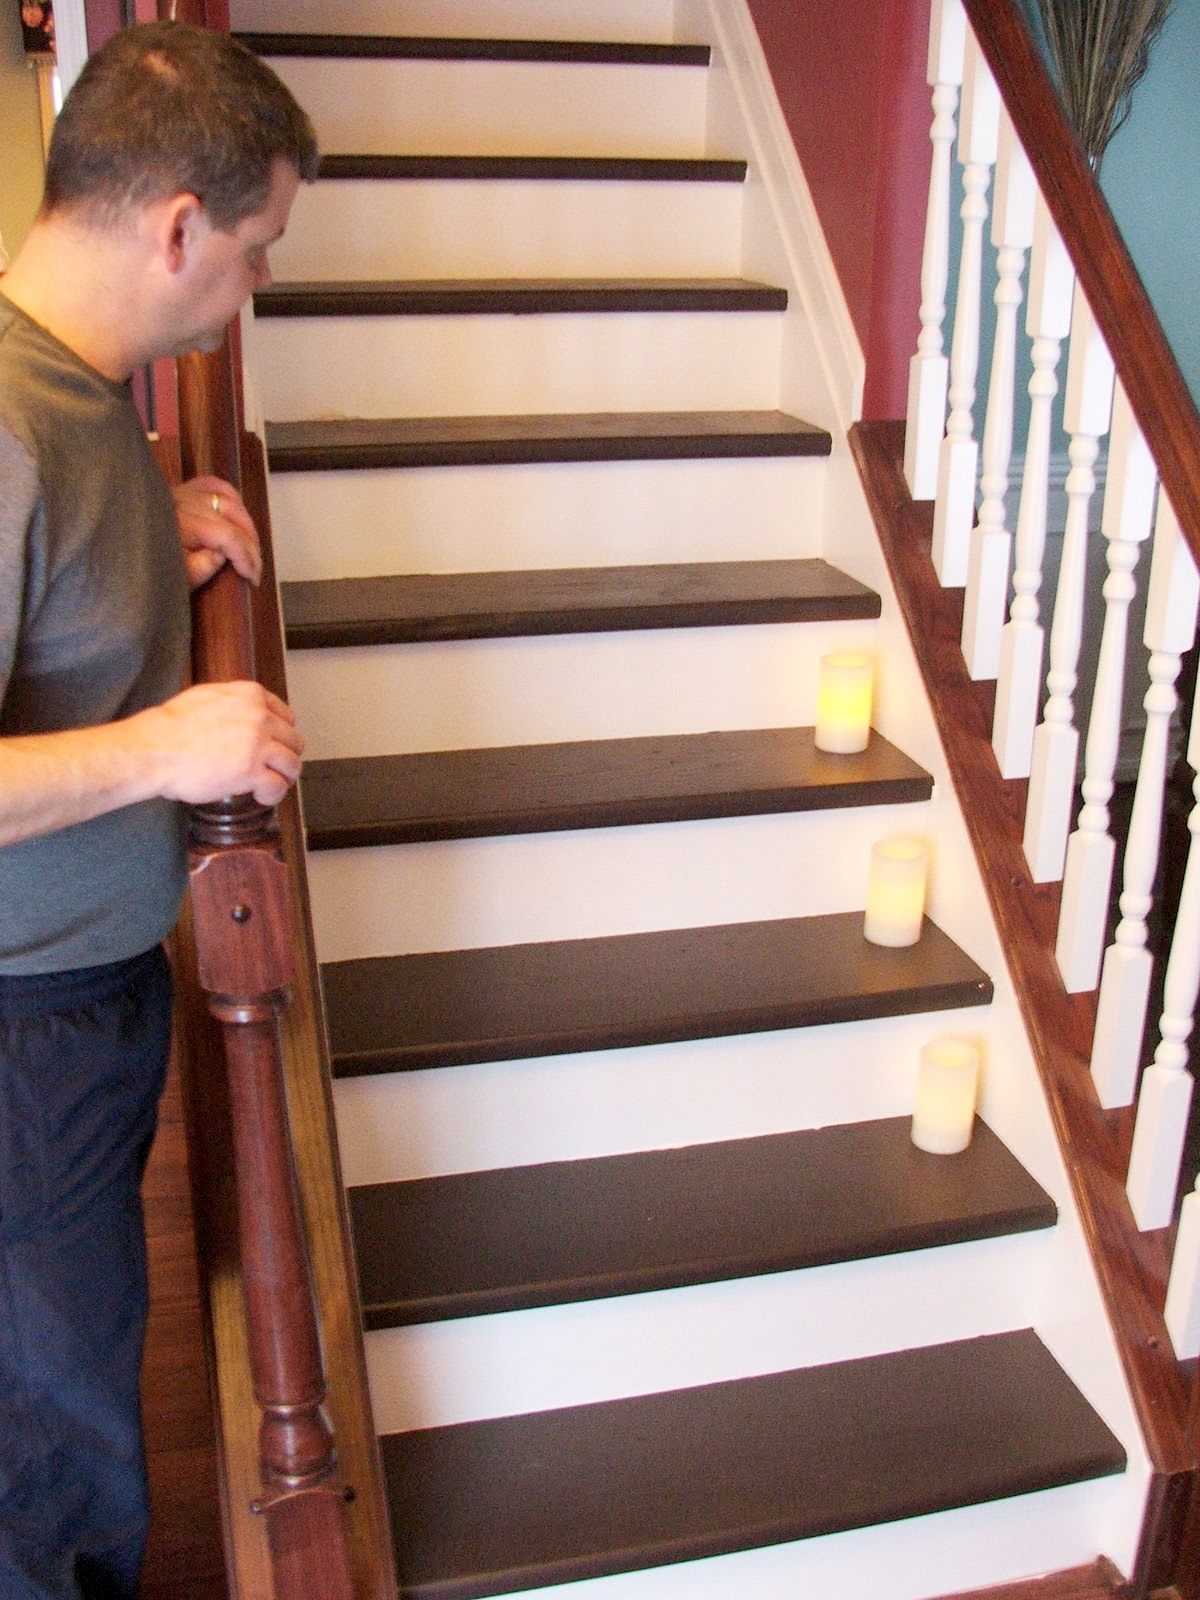 Remodelaholic Under 100 Carpeted Stair To Wooden Tread Makeover Diy With Regard To Diy Stair Tread Rugs (View 7 of 15)